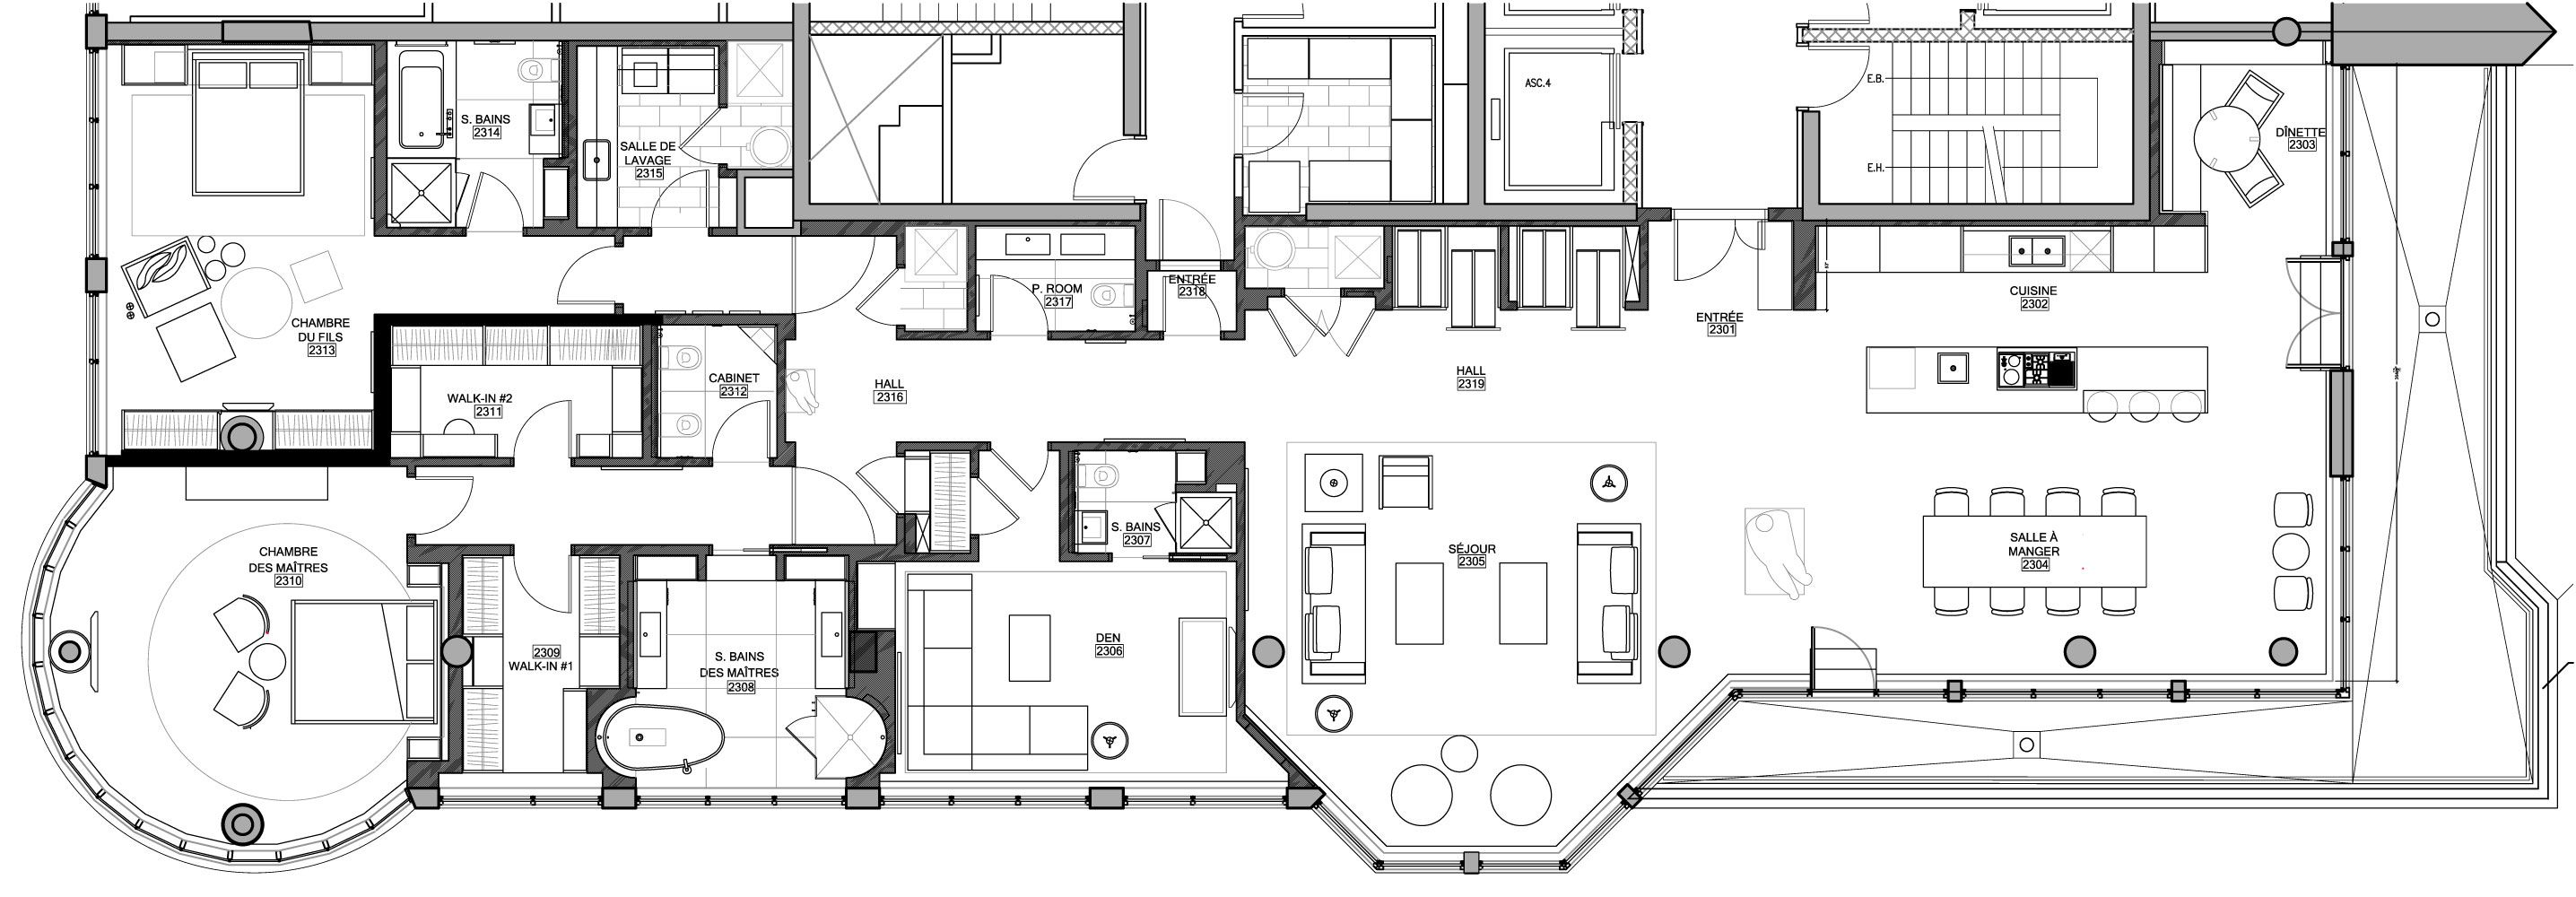 Pin By Yam Cheung On Floor Plans In